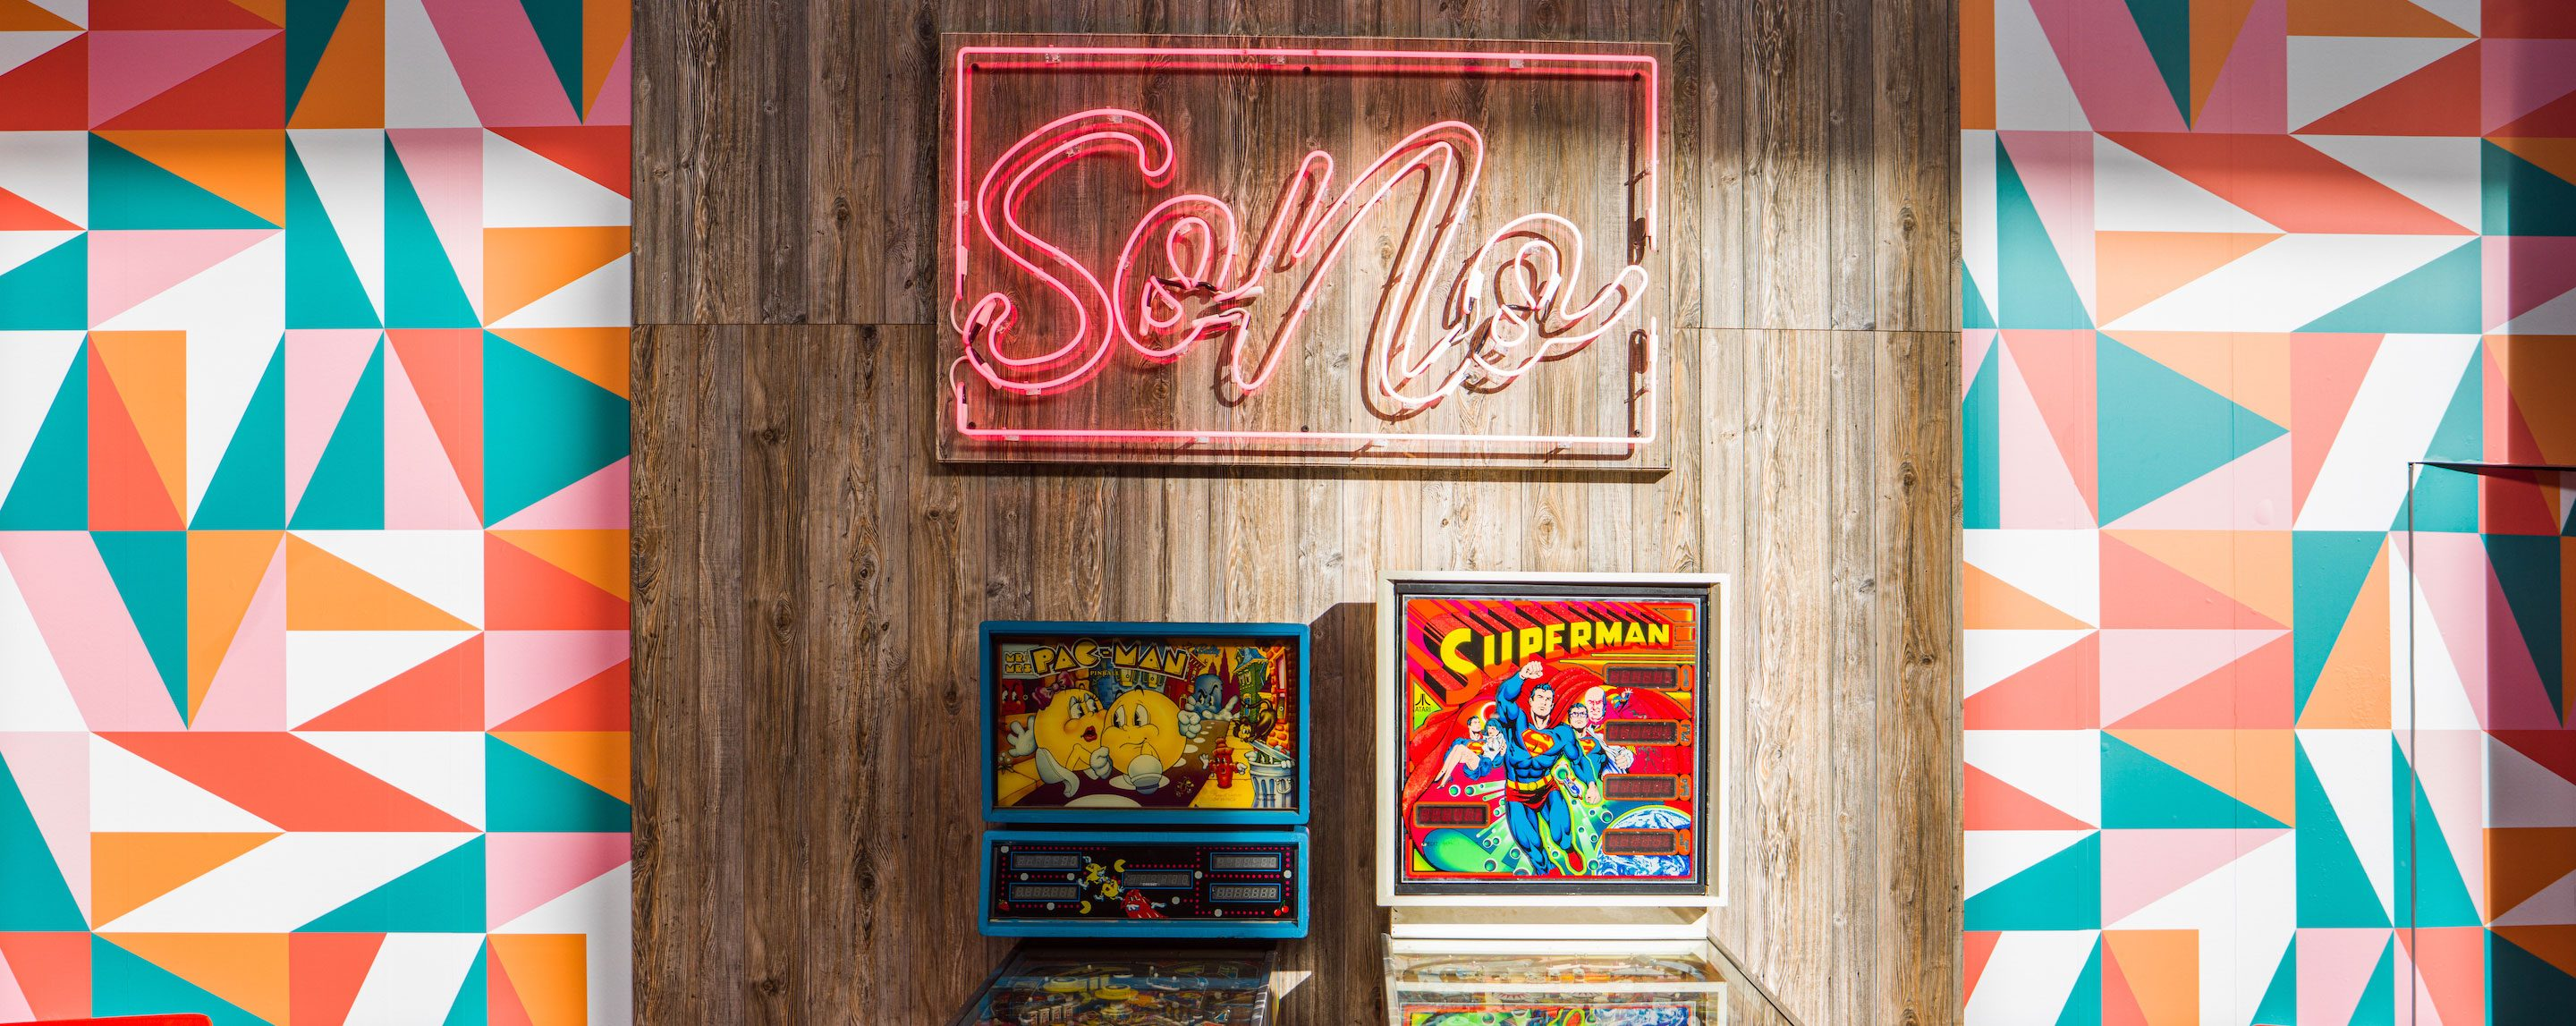 A Pac-Man and Superman pinball game are placed against a wood wall below a neon sign.